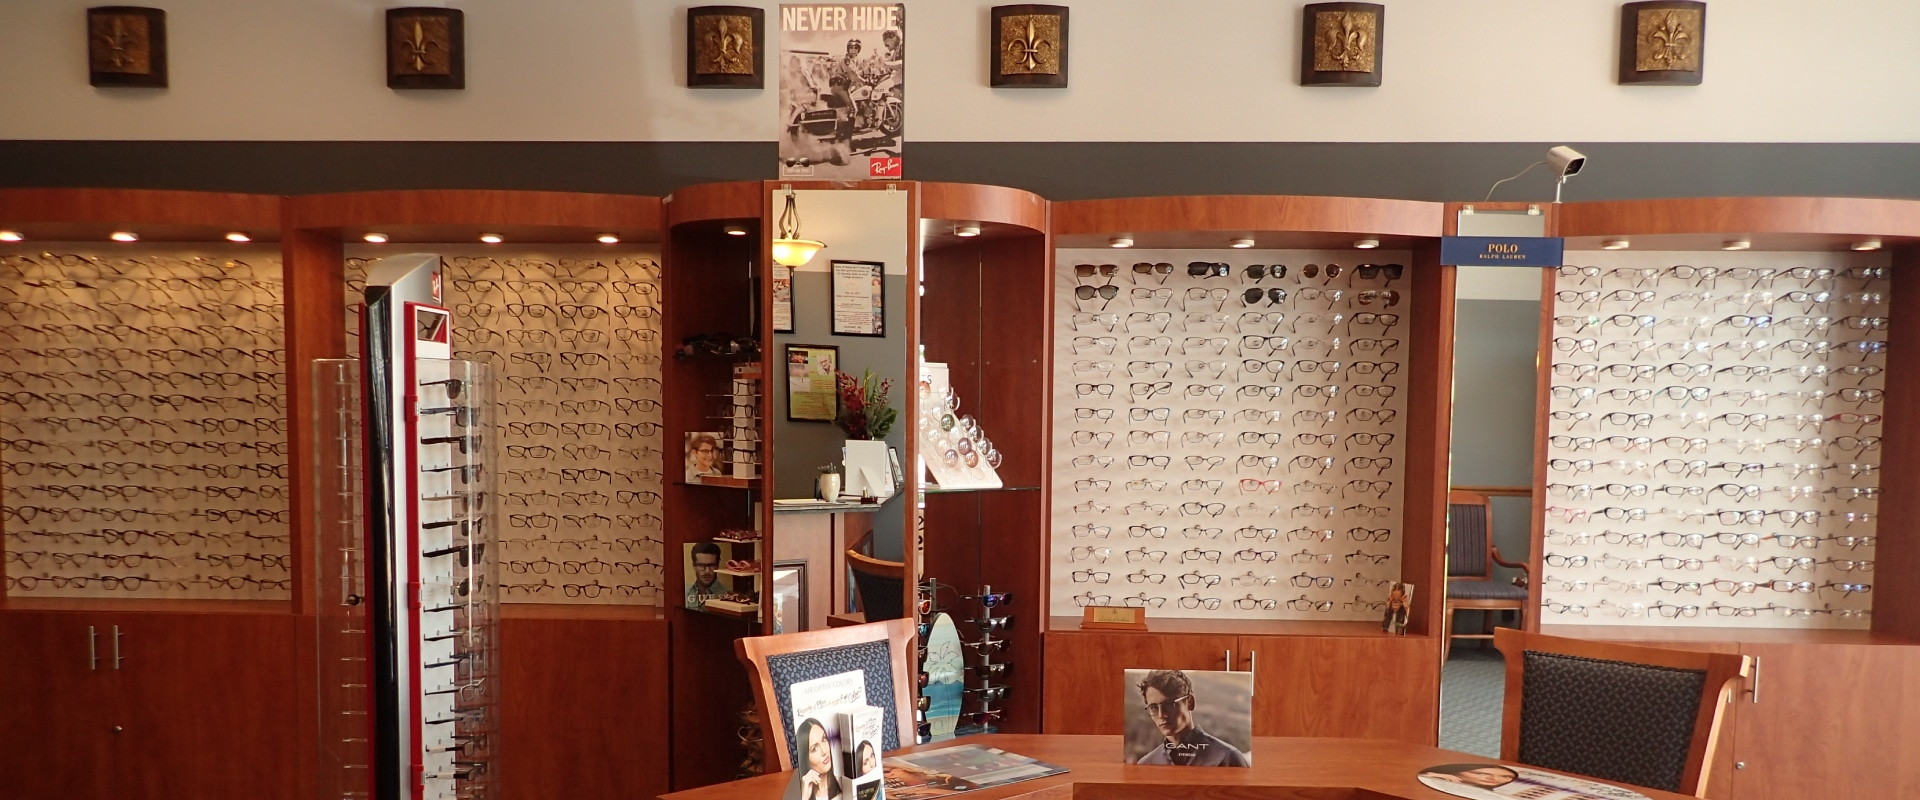 Maxivision Eye Care